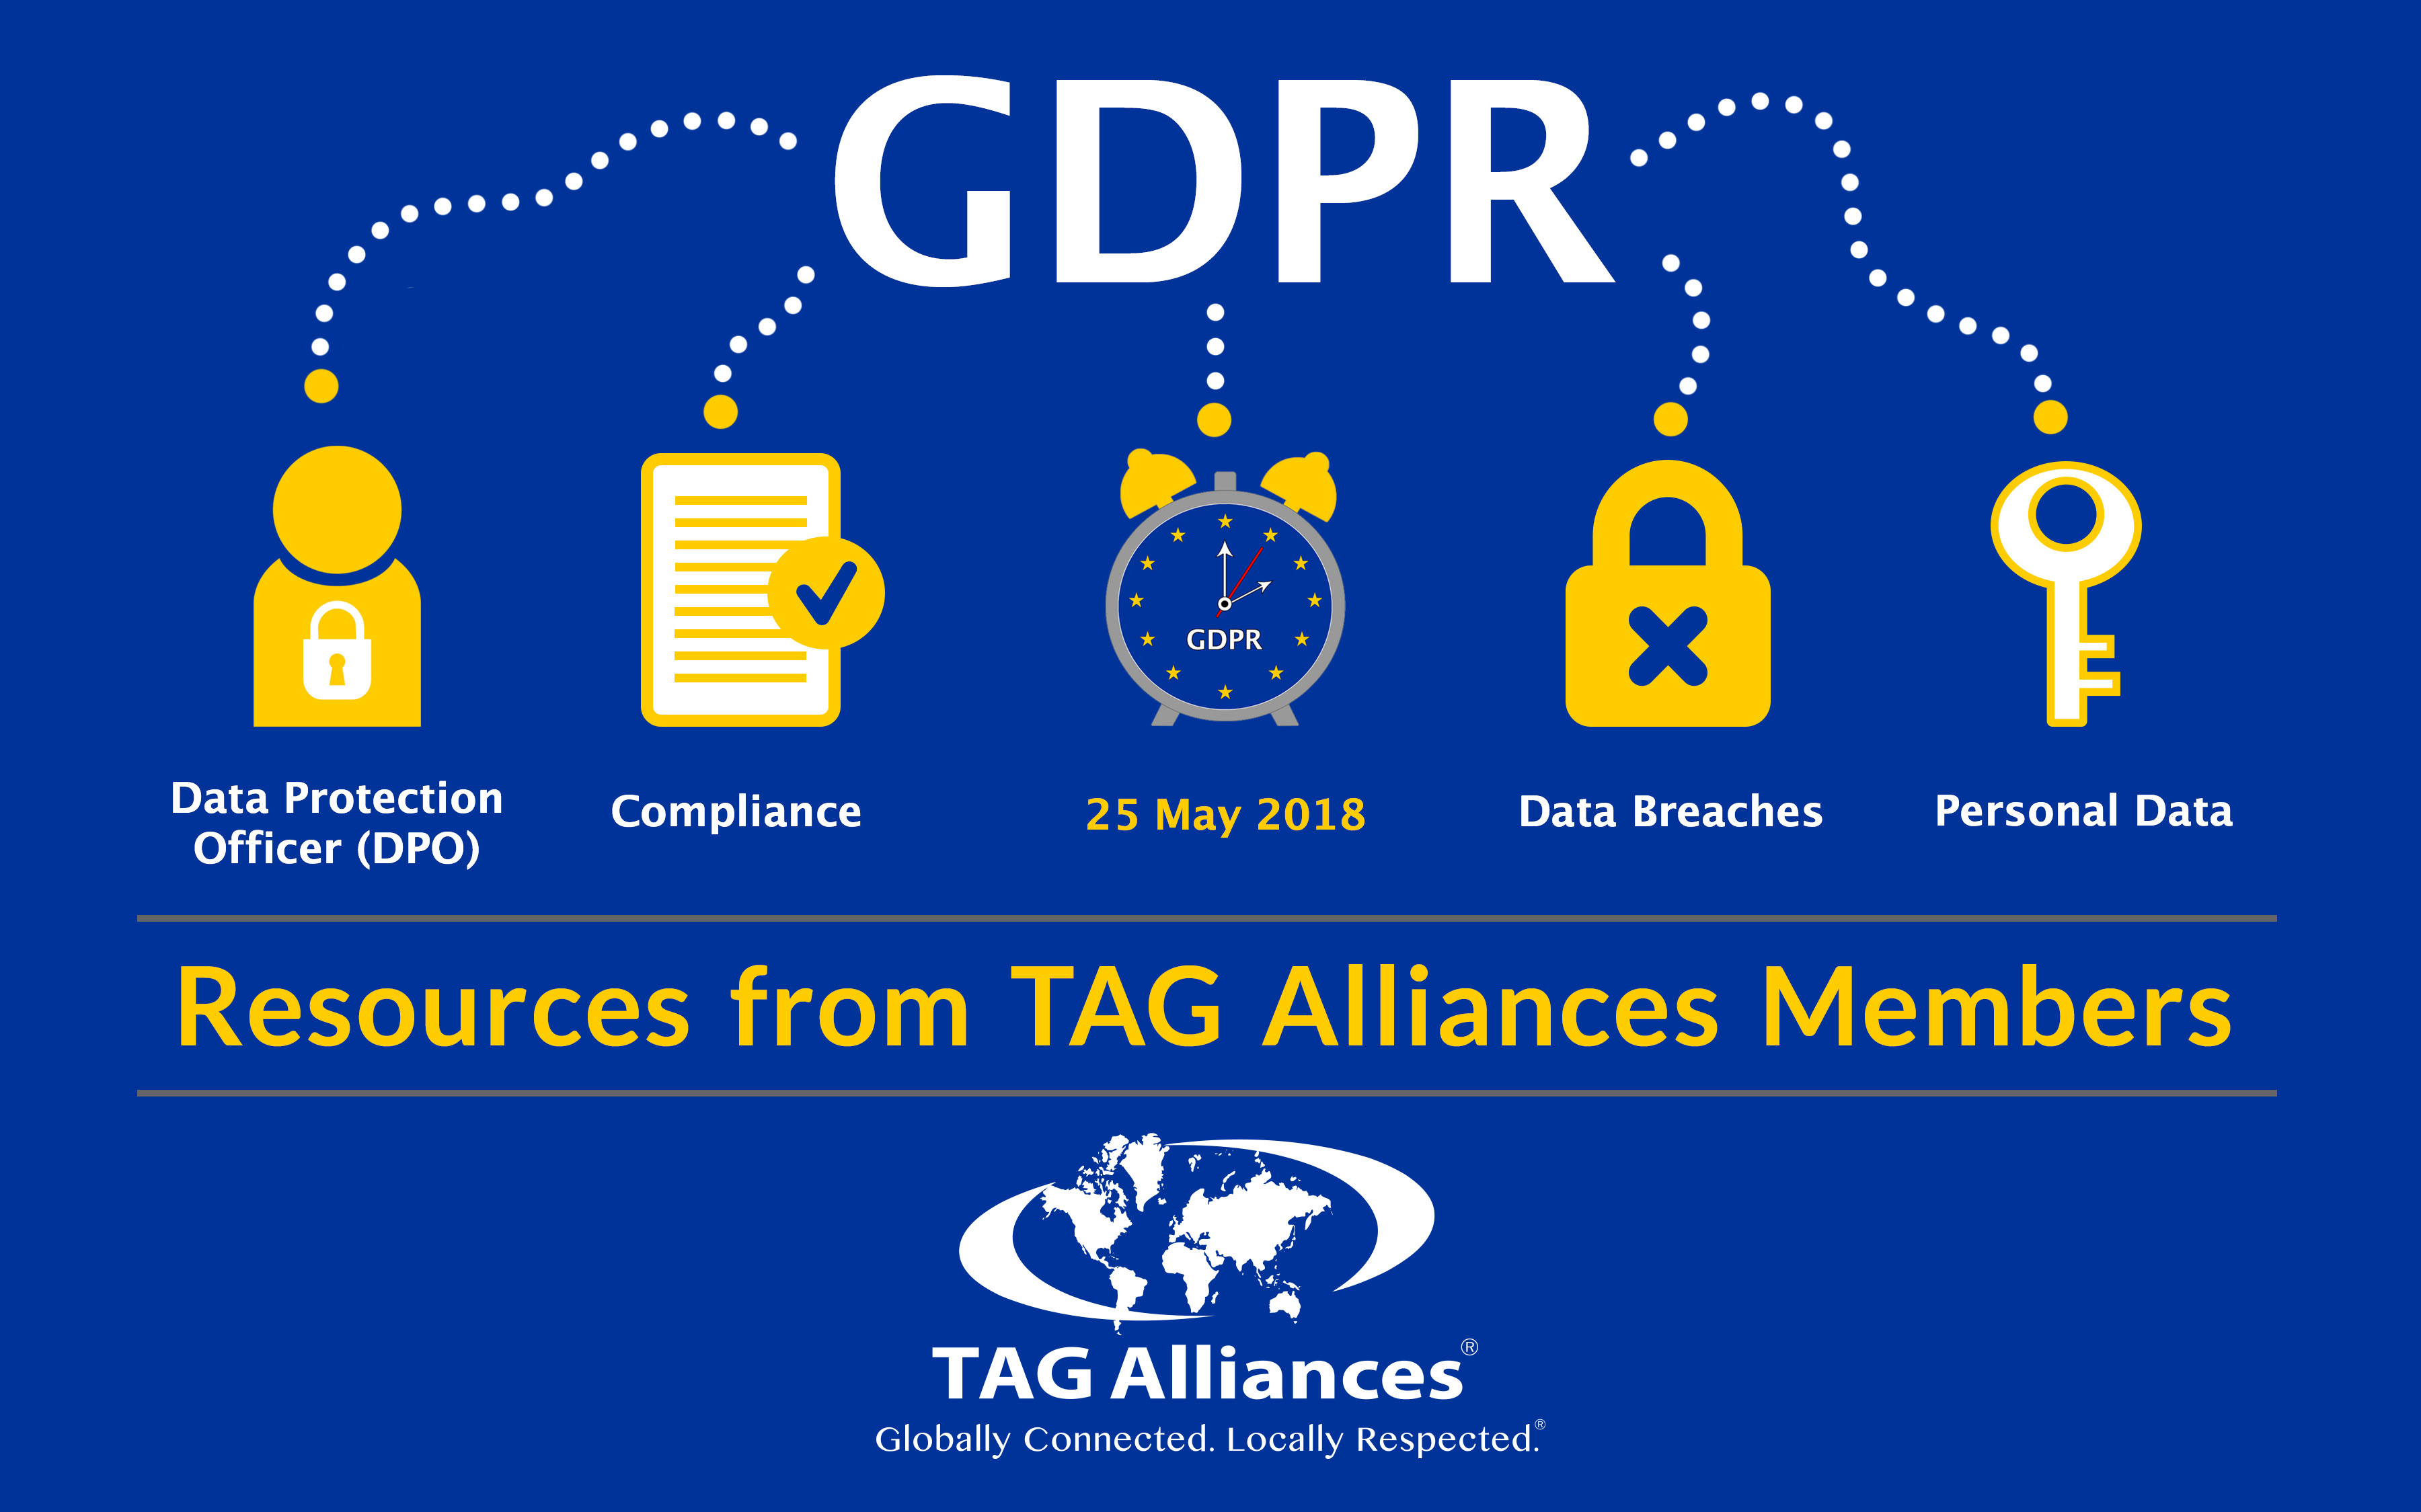 General Data Protection Regulation (GDPR) Concept Illustration - 25 May 2018 Dubai UAE abu Dhabi